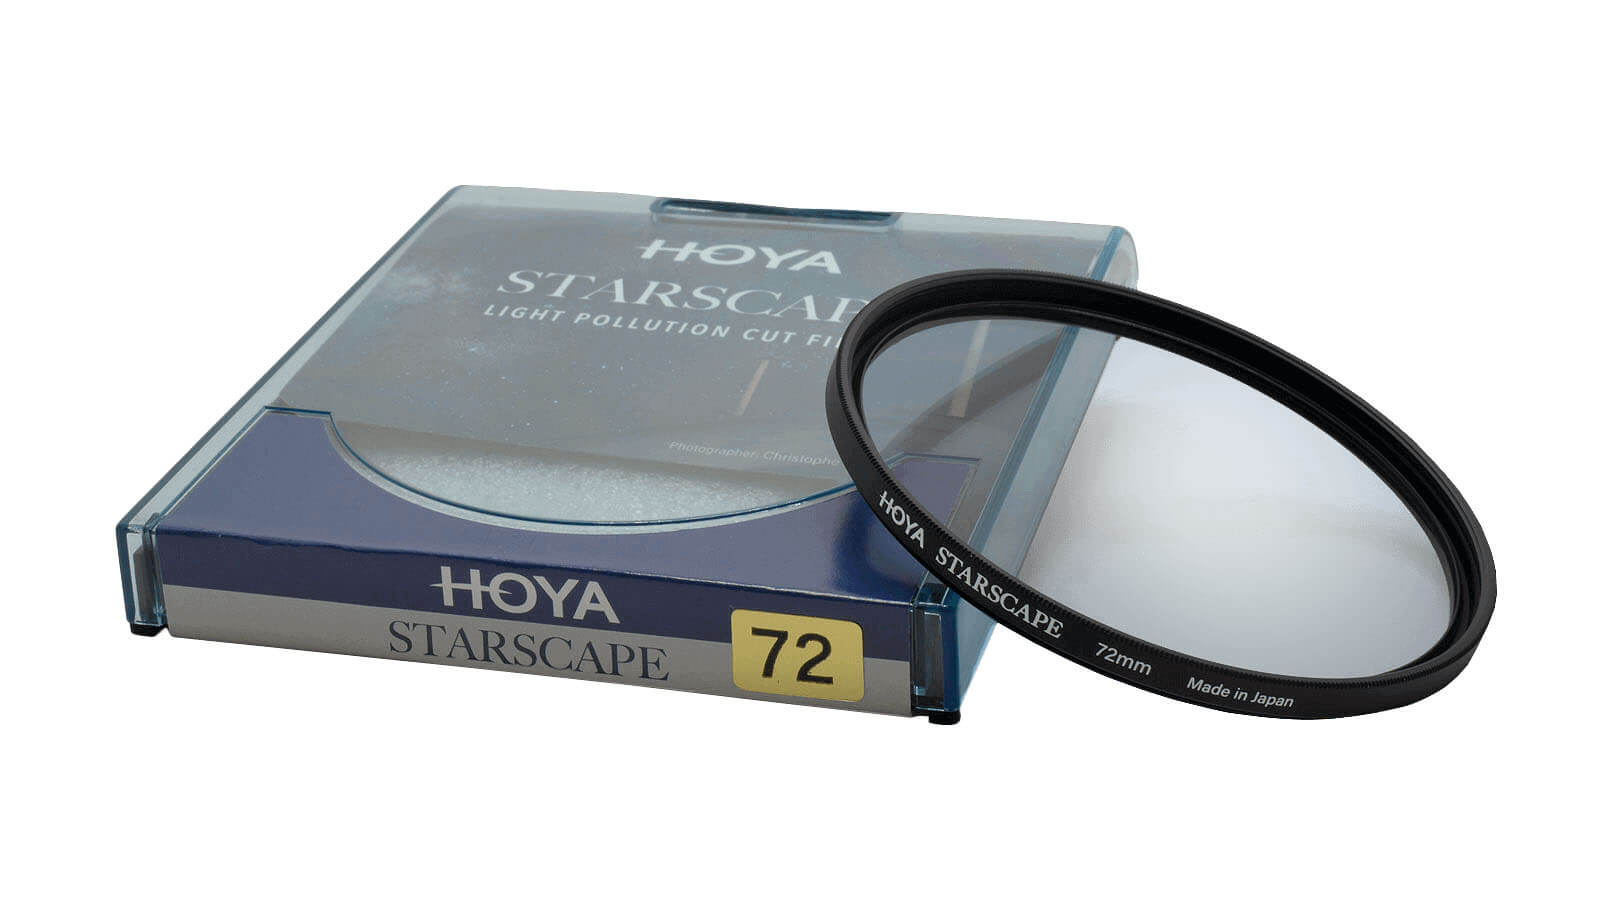 hoya starscape box